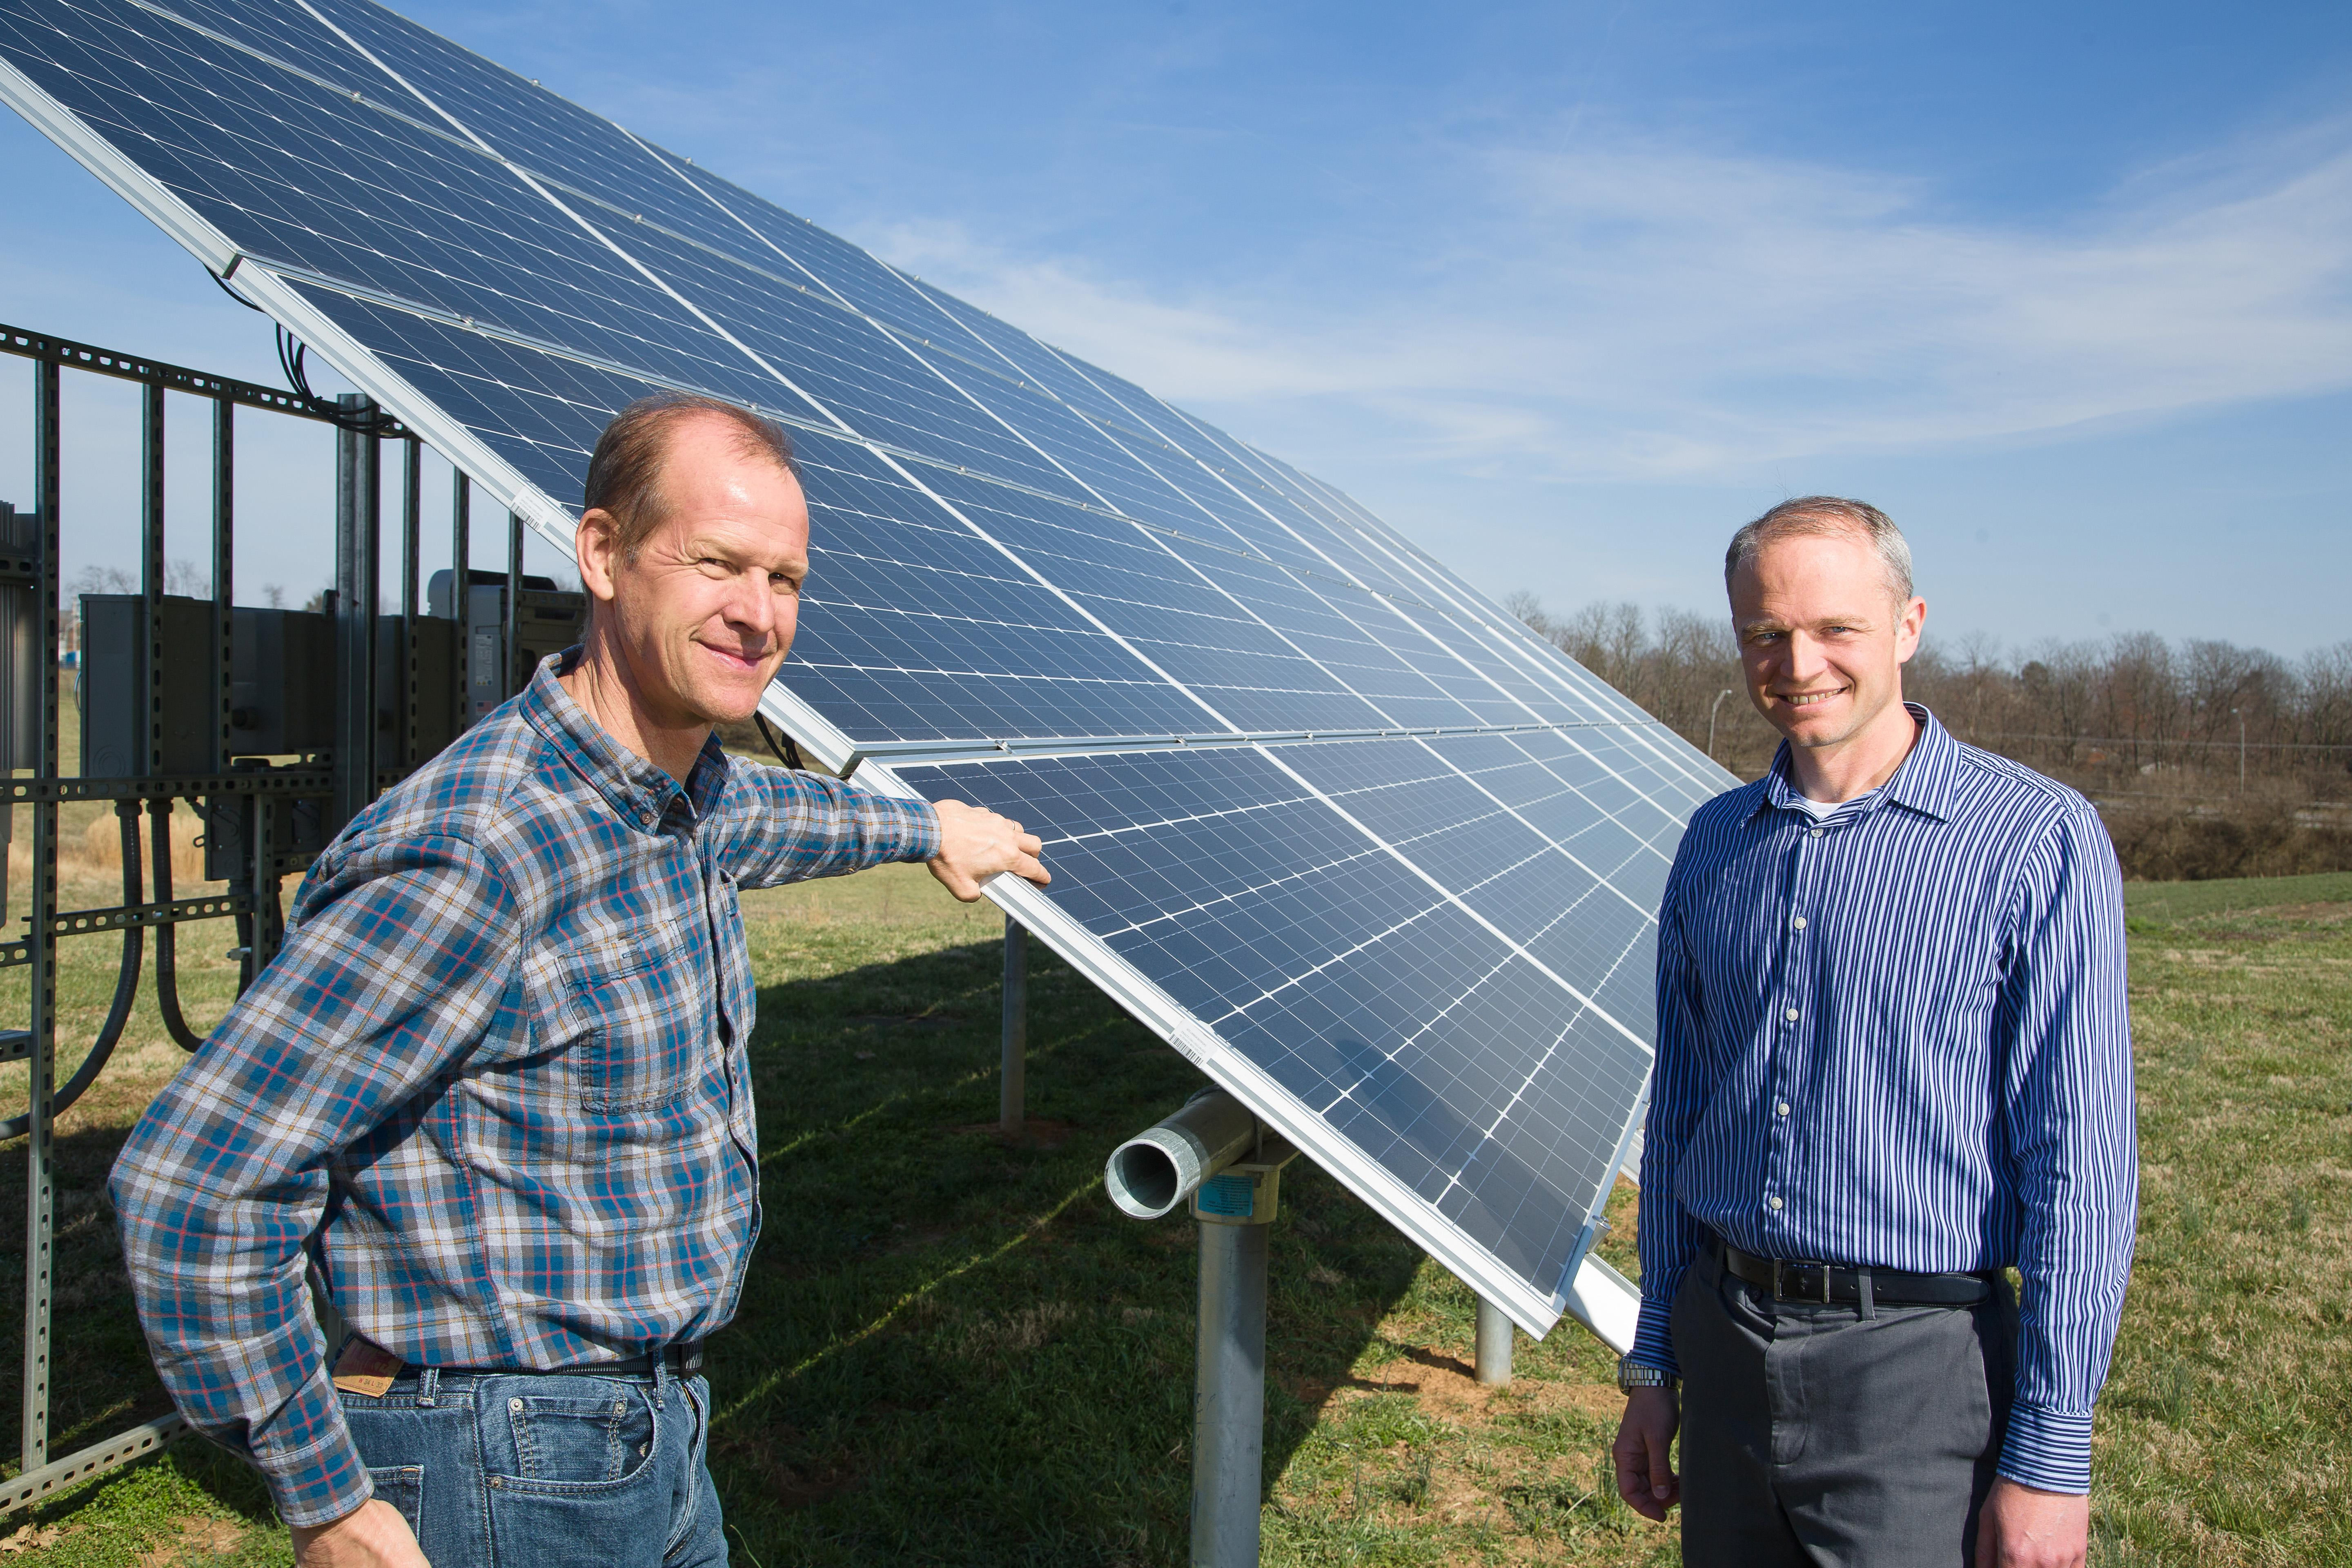 Mark Williams and Joe Dvorak with the solar array that offsets all the energy used on the UK organic farm.